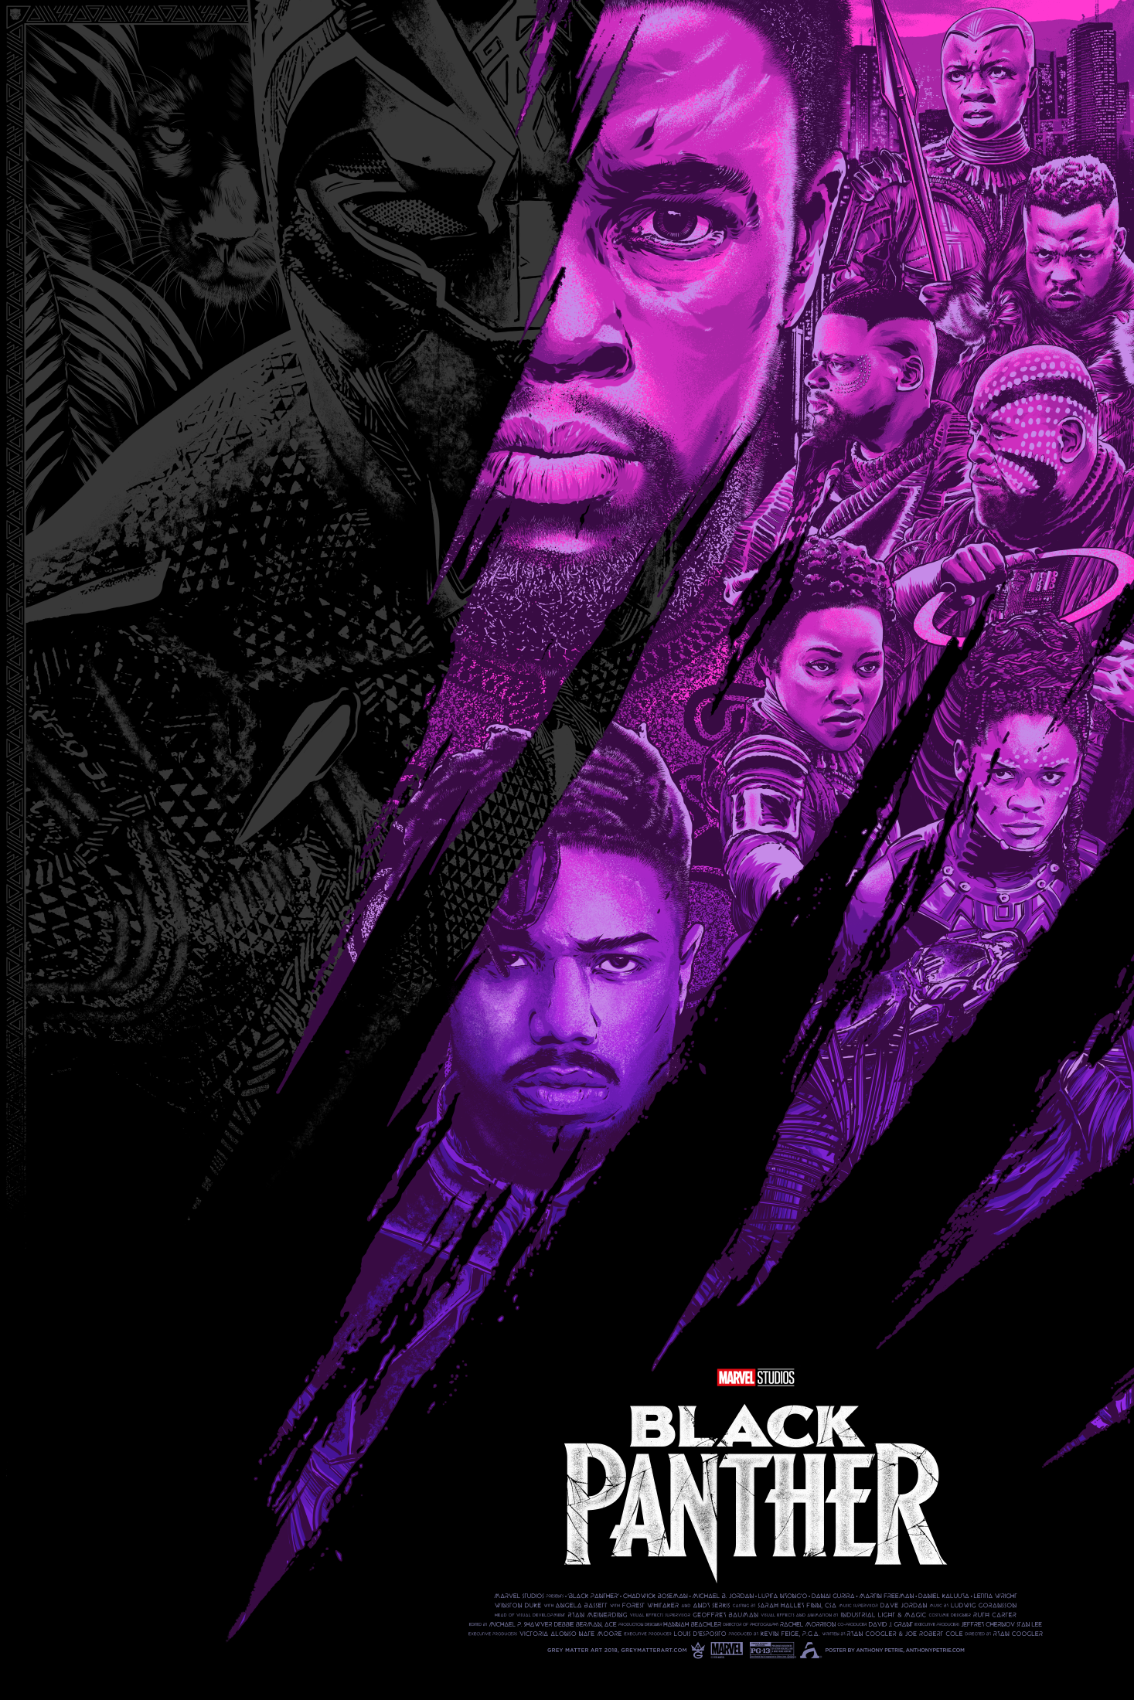 Wakanda Forever Artist Anthony Petrie Draws The King Of Wakanda In This Limited Edition Black Panther Movie Poster Marvel Movie Posters Black Panther Marvel